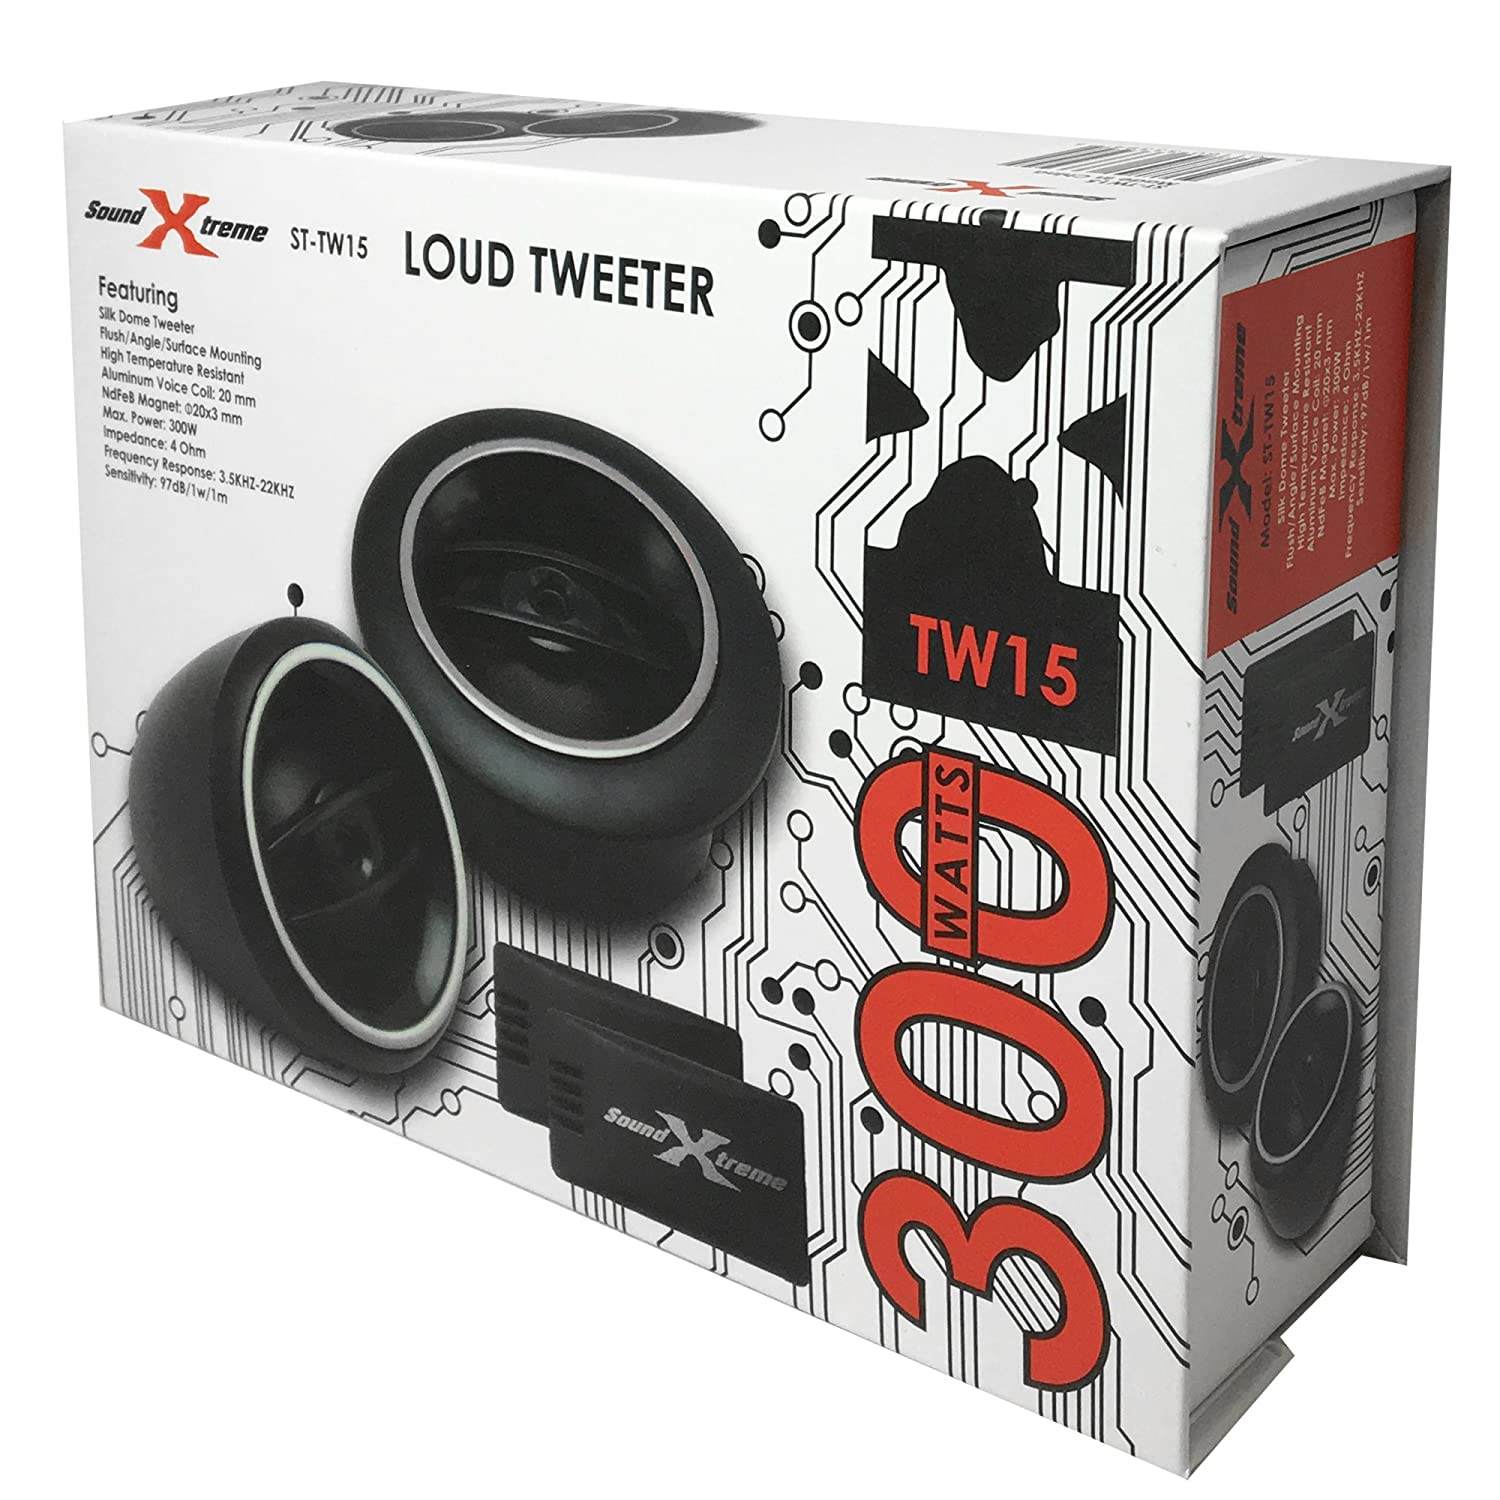 SoundXtreme ST-TW15 LOUD Tweeters 1